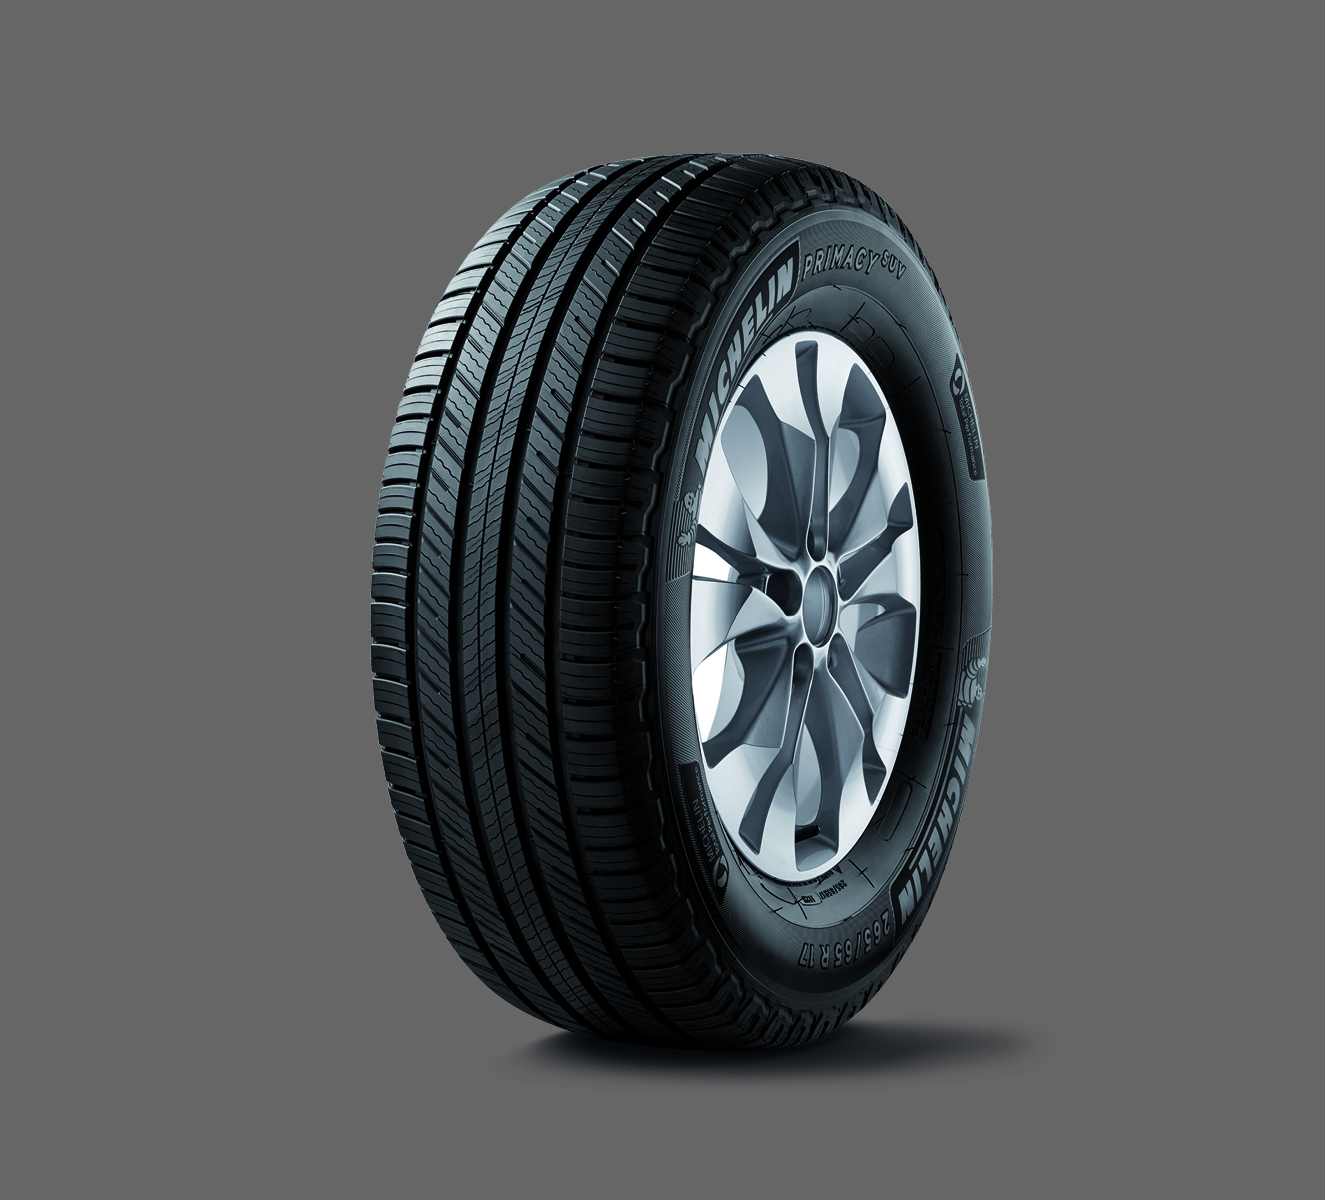 Motoring-Malaysia: MICHELIN Launches its new mid-range SUV tyre ...